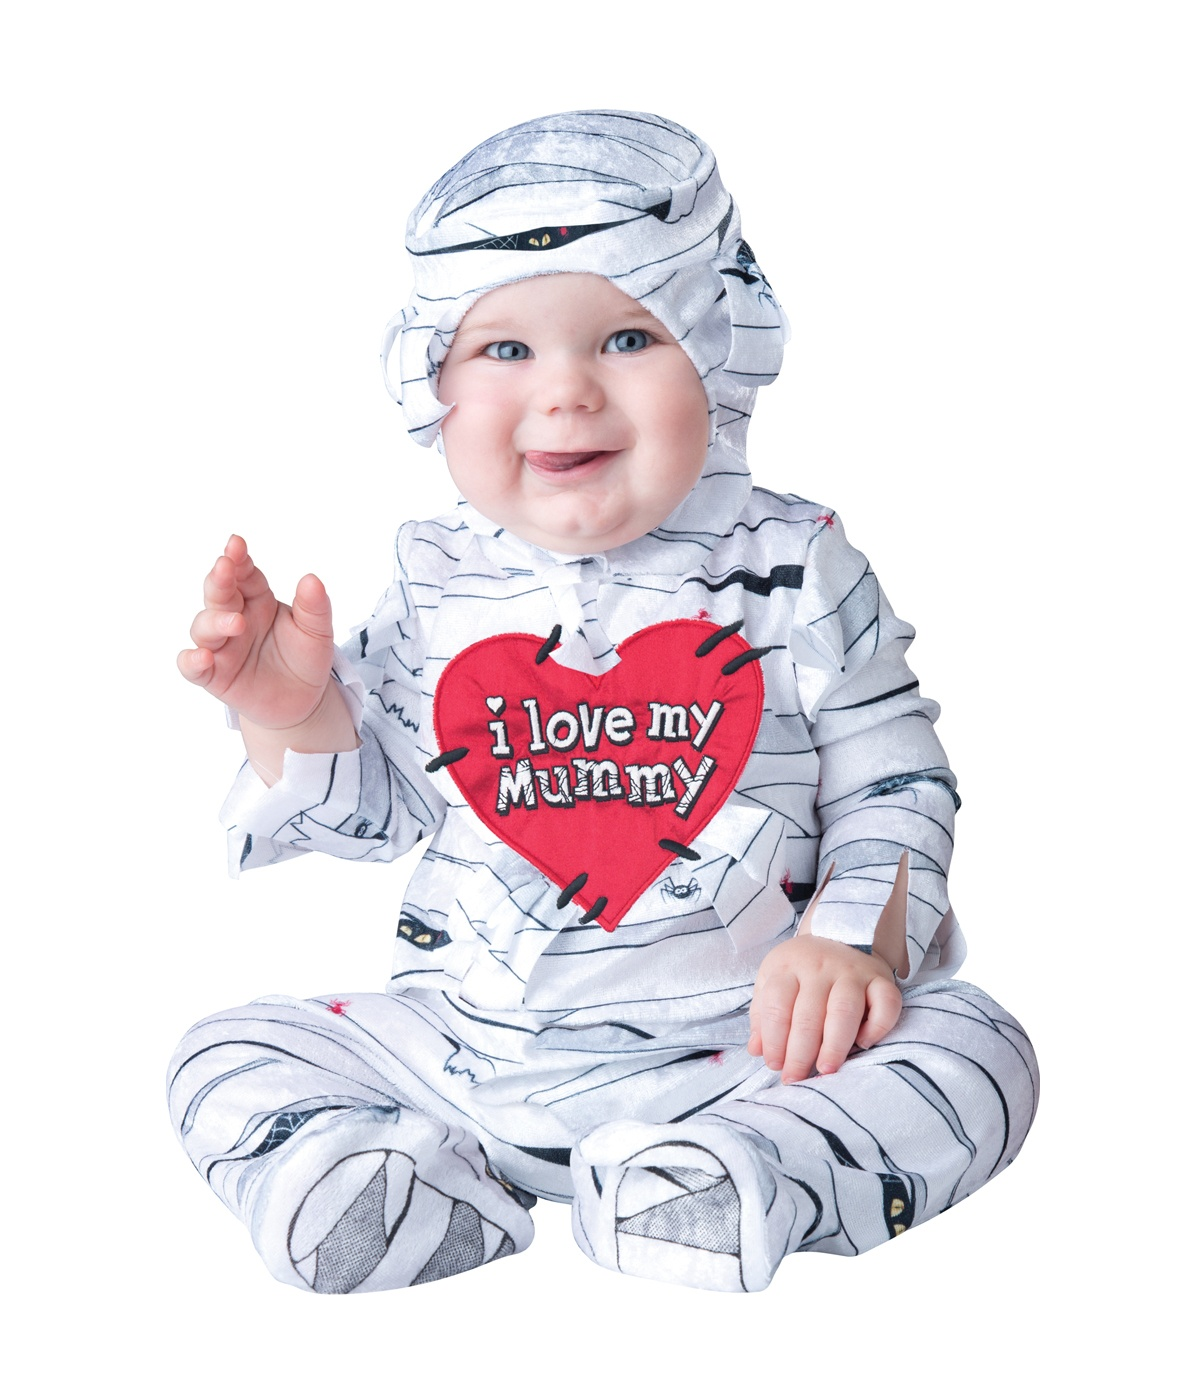 Baby Devil Halloween Costumes uk Boy Baby Halloween Costume